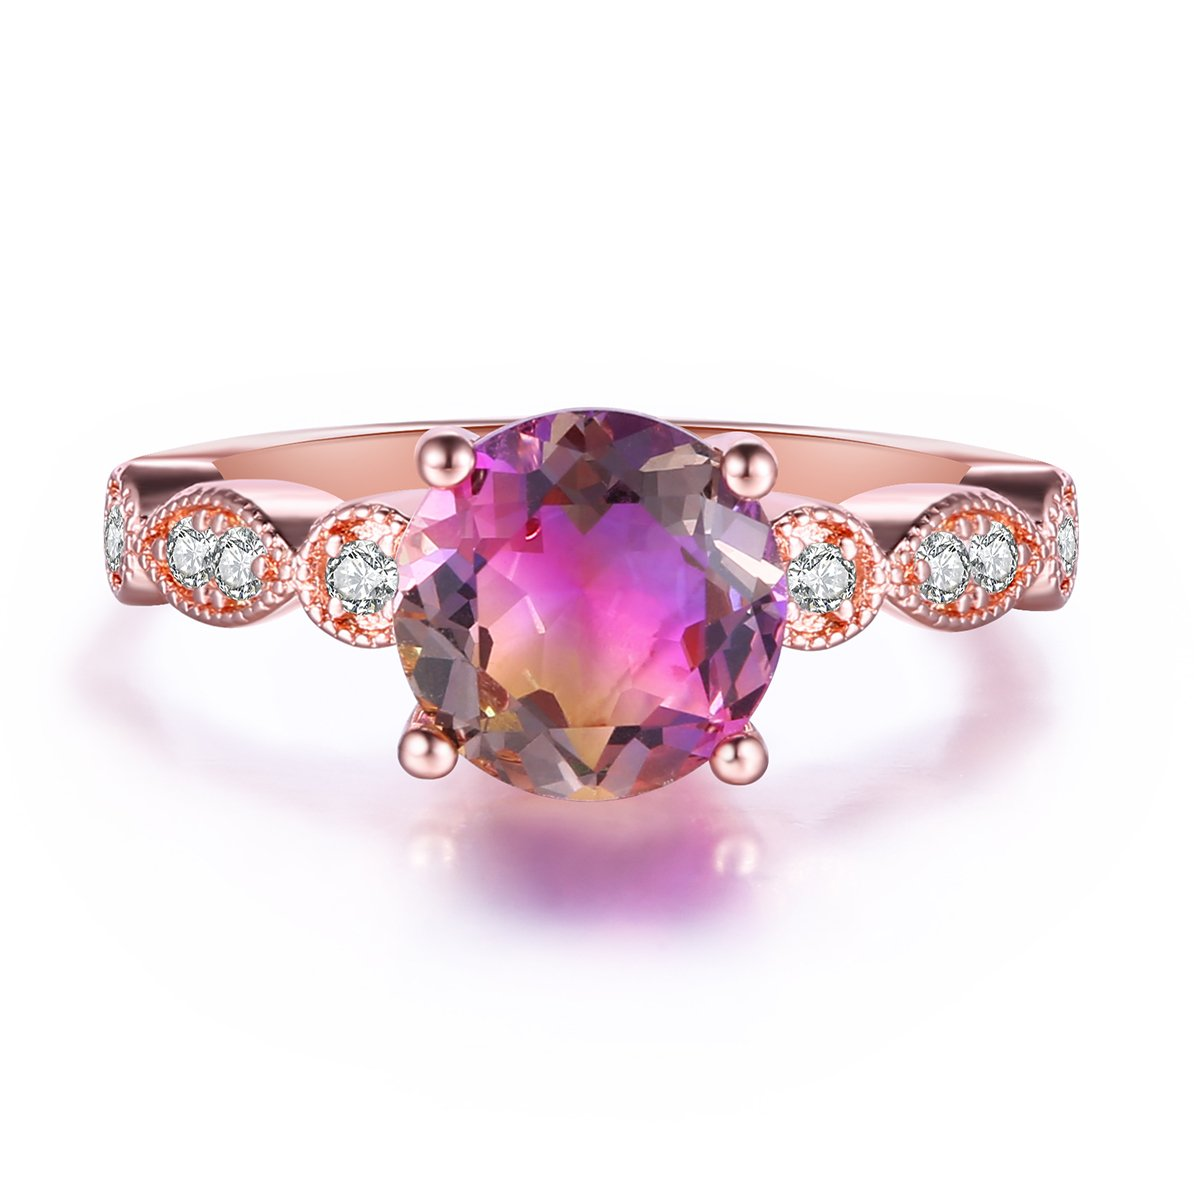 Round Simulated Ametrine Crystal Purple Yellow Gradient Solitaire Rings for Women, Rose Gold Plated Size 5